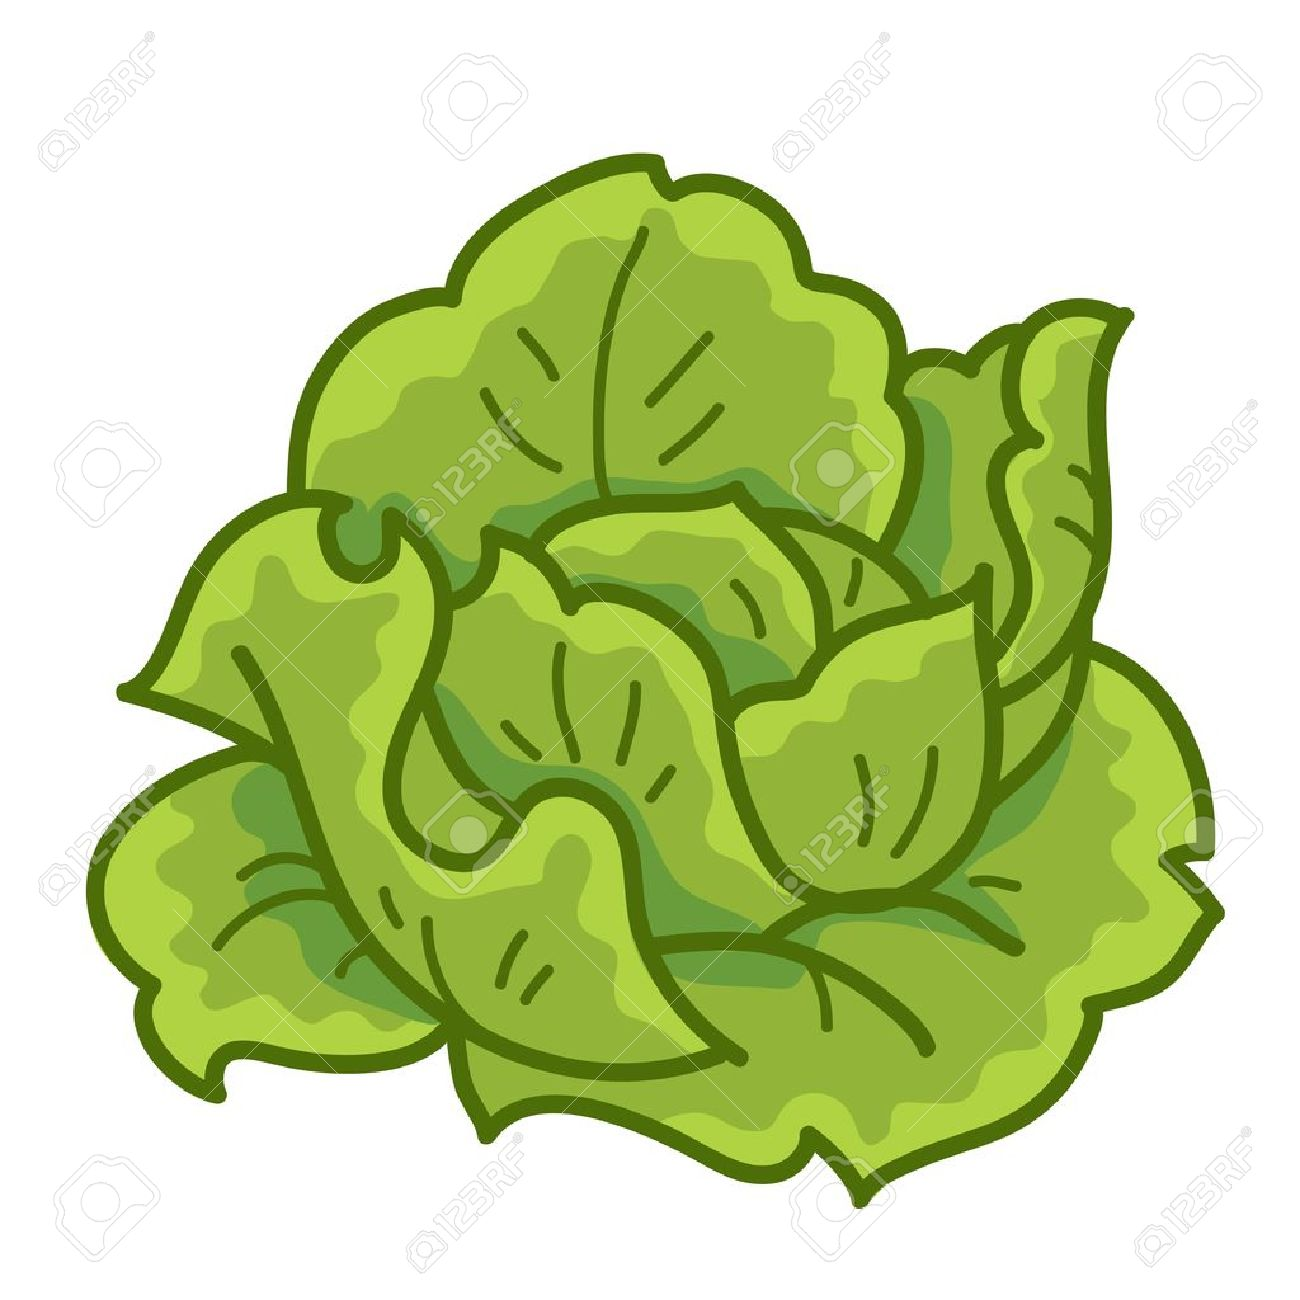 Lettuce clipart cartoon #9